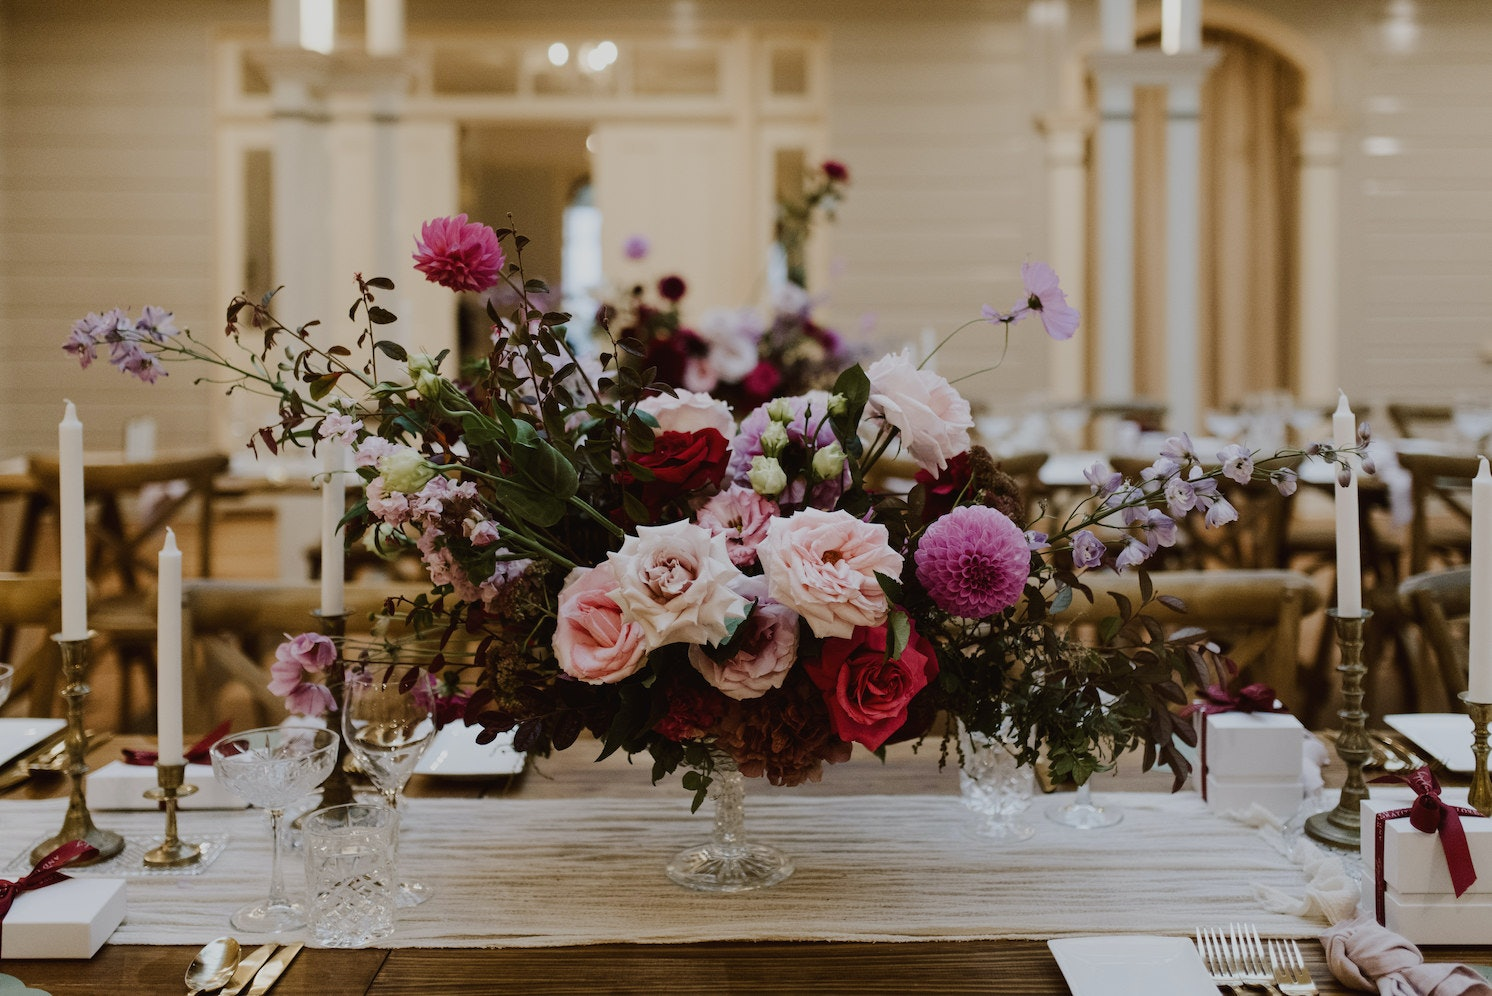 Floral bouquet on table